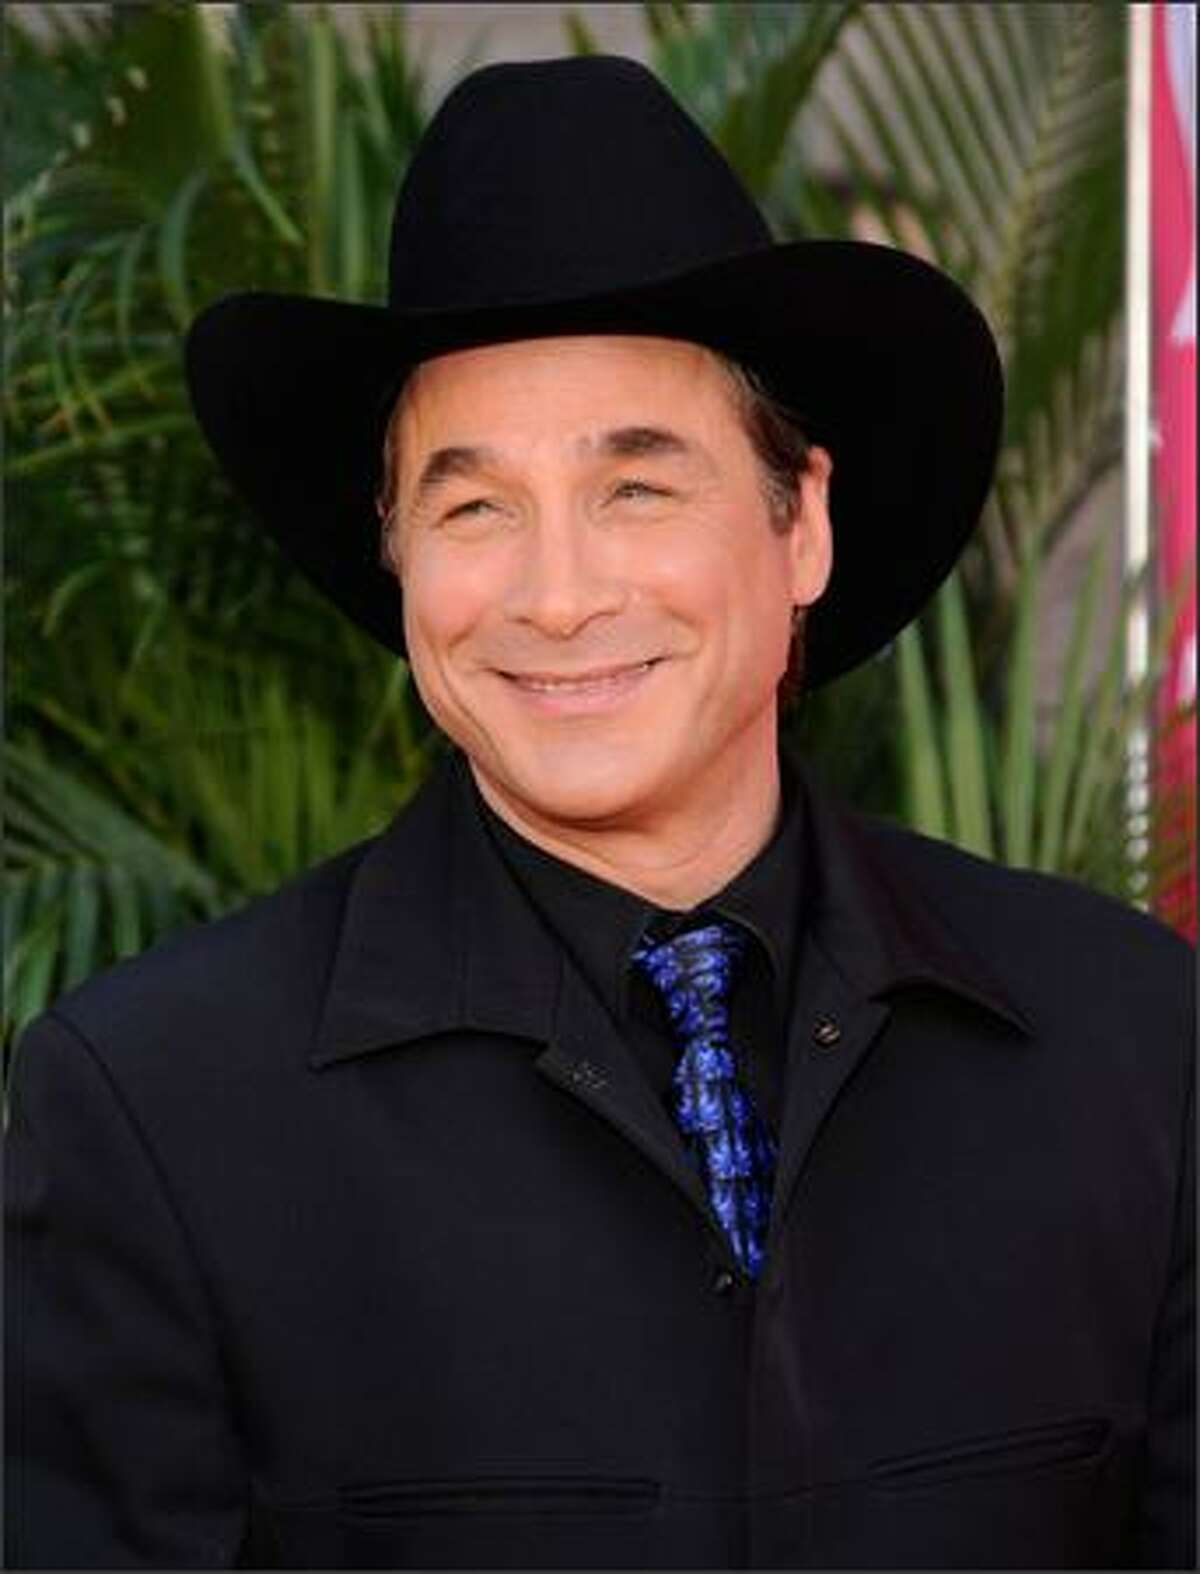 Musician Clint Black arrives at the 43rd annual Academy of Country Music Awards in Las Vegas.